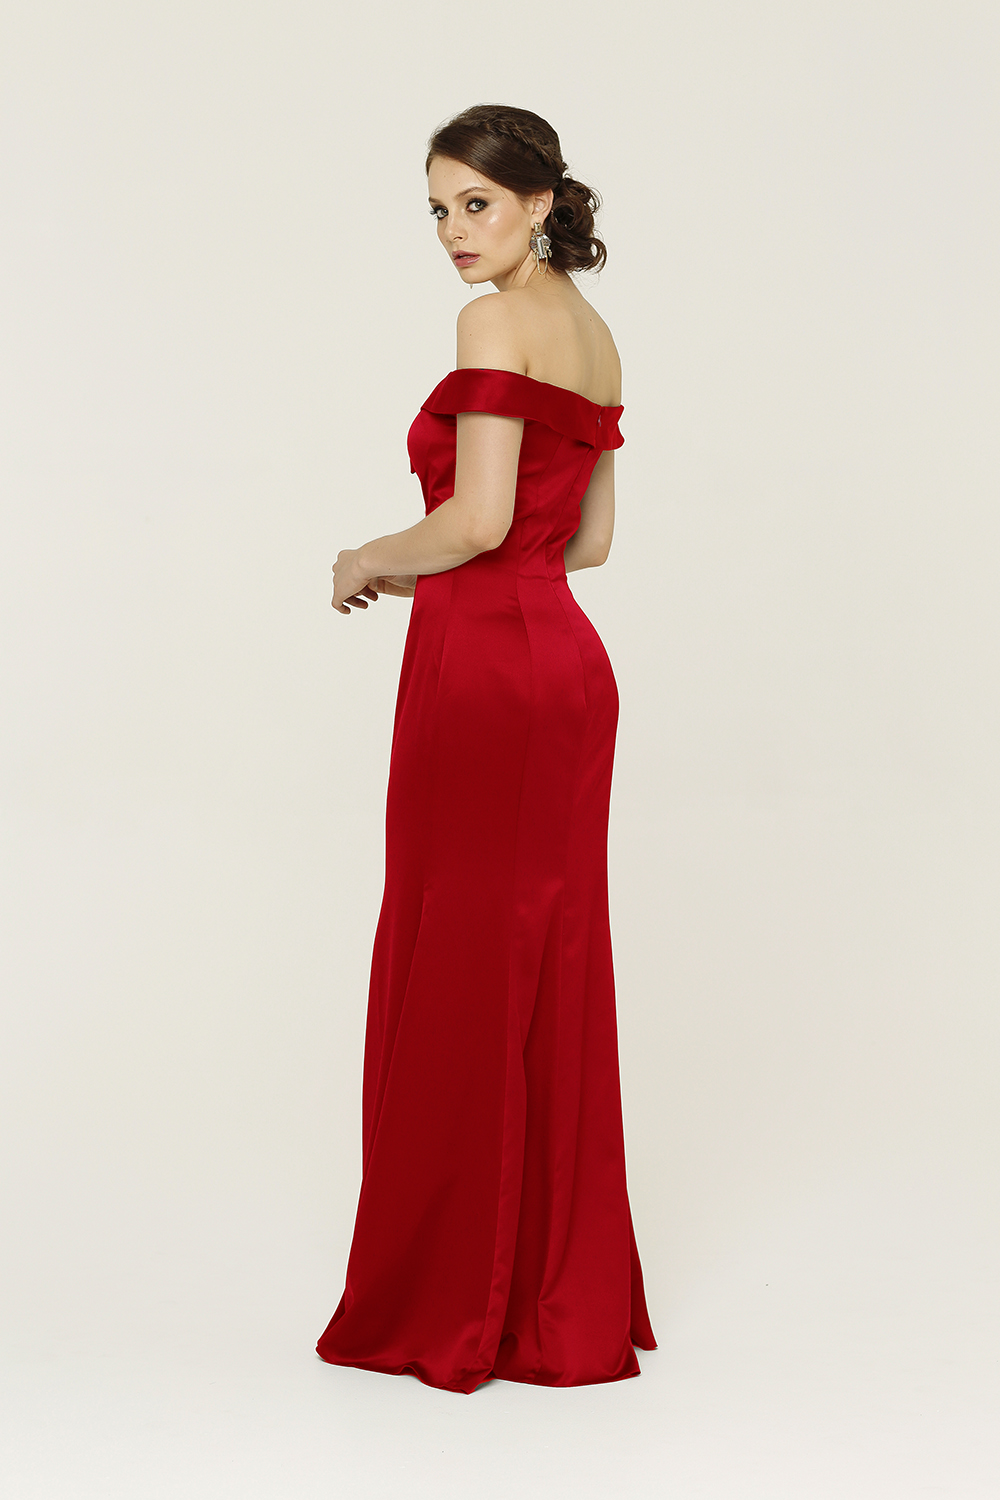 PO64 Ava dress back red